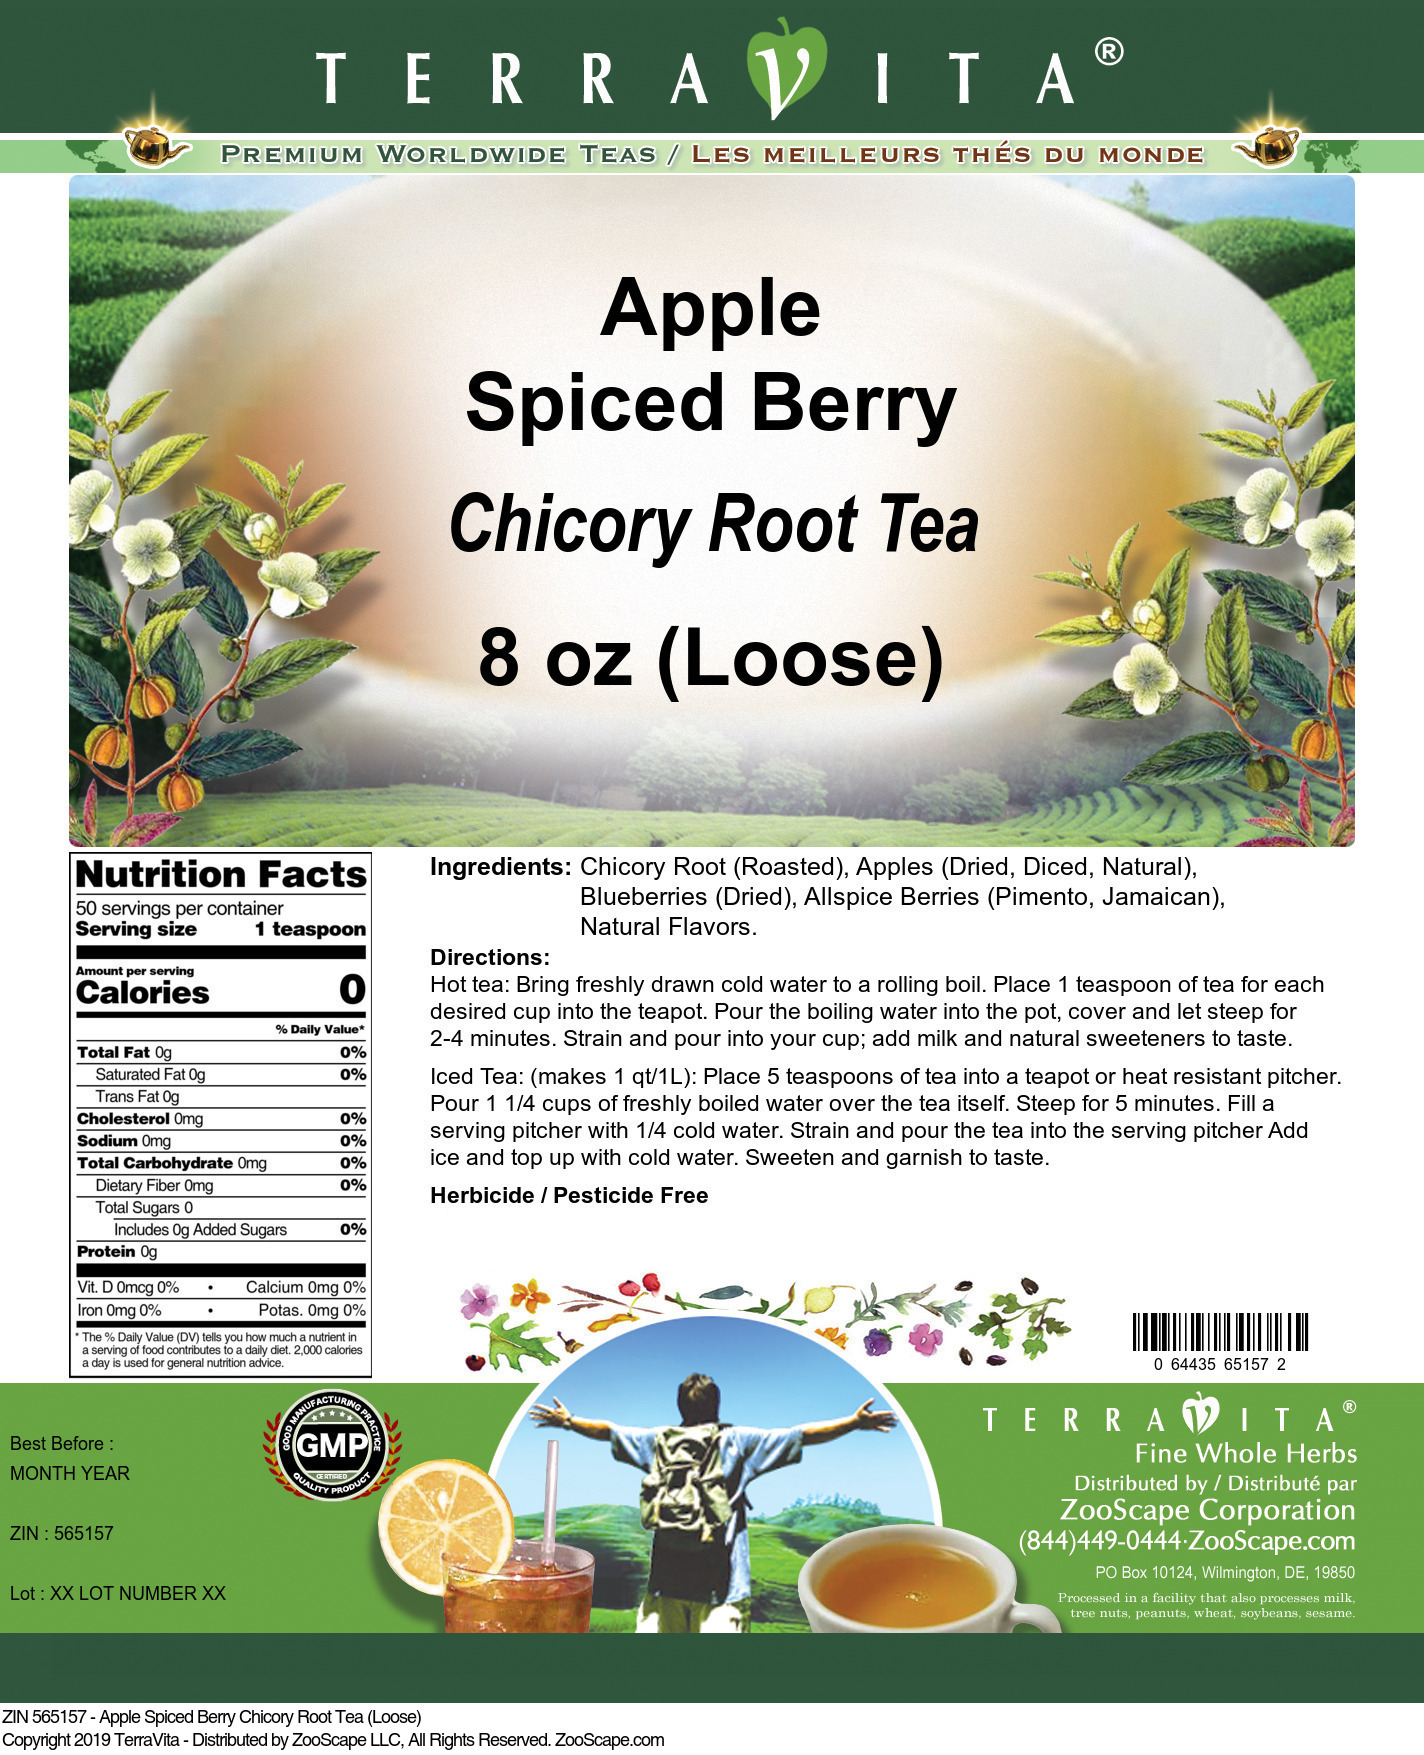 Apple Spiced Berry Chicory Root